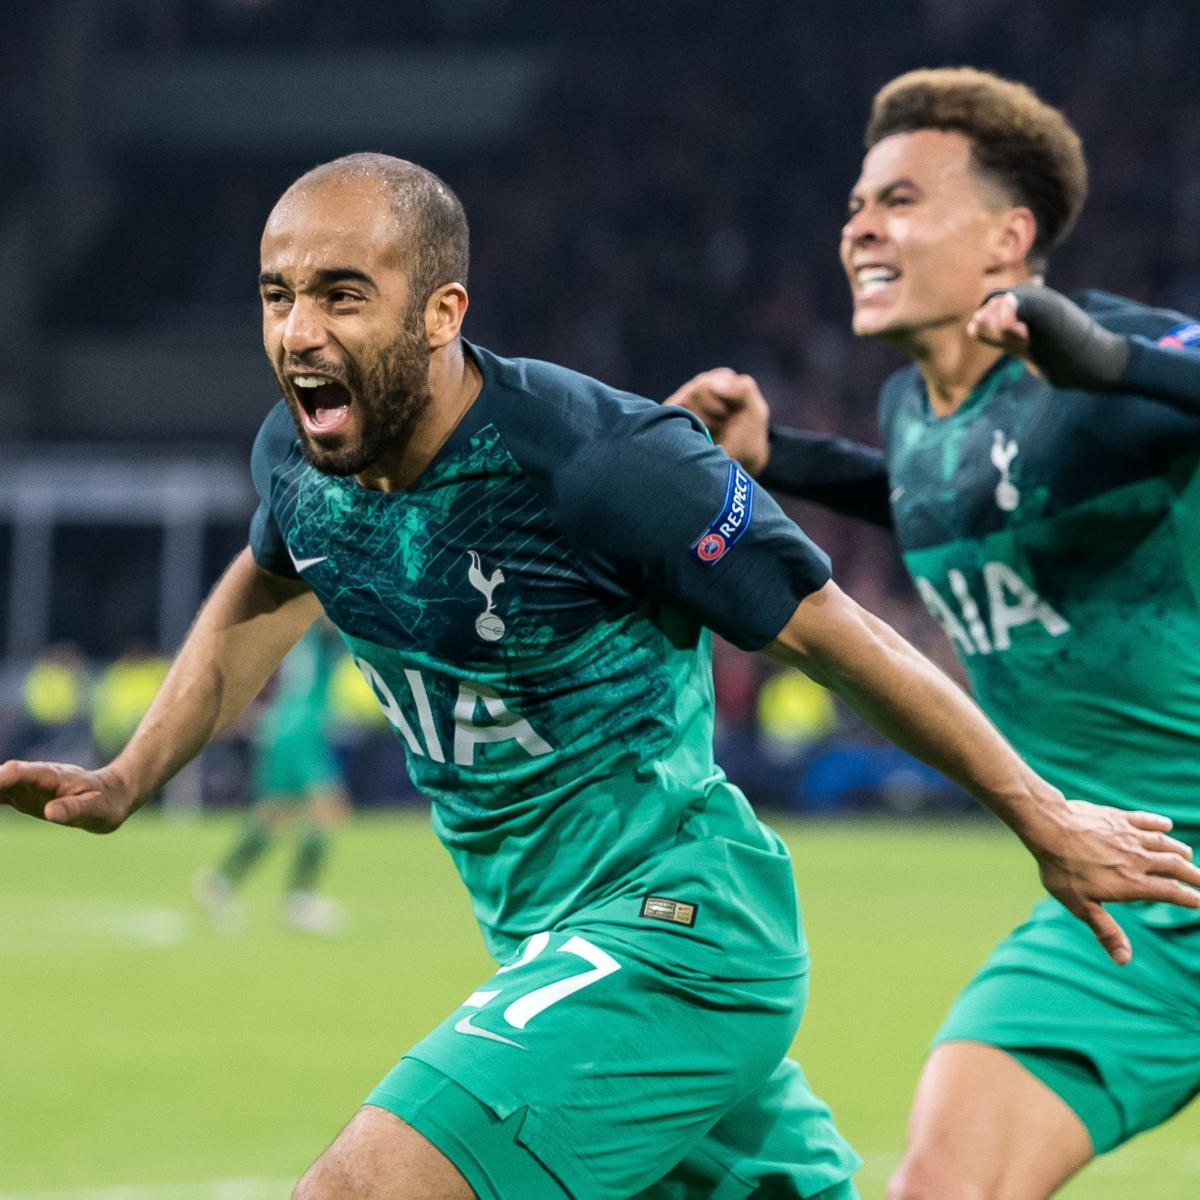 Video: Watch Lucas Moura's Shocking 96th-Minute Goal Send